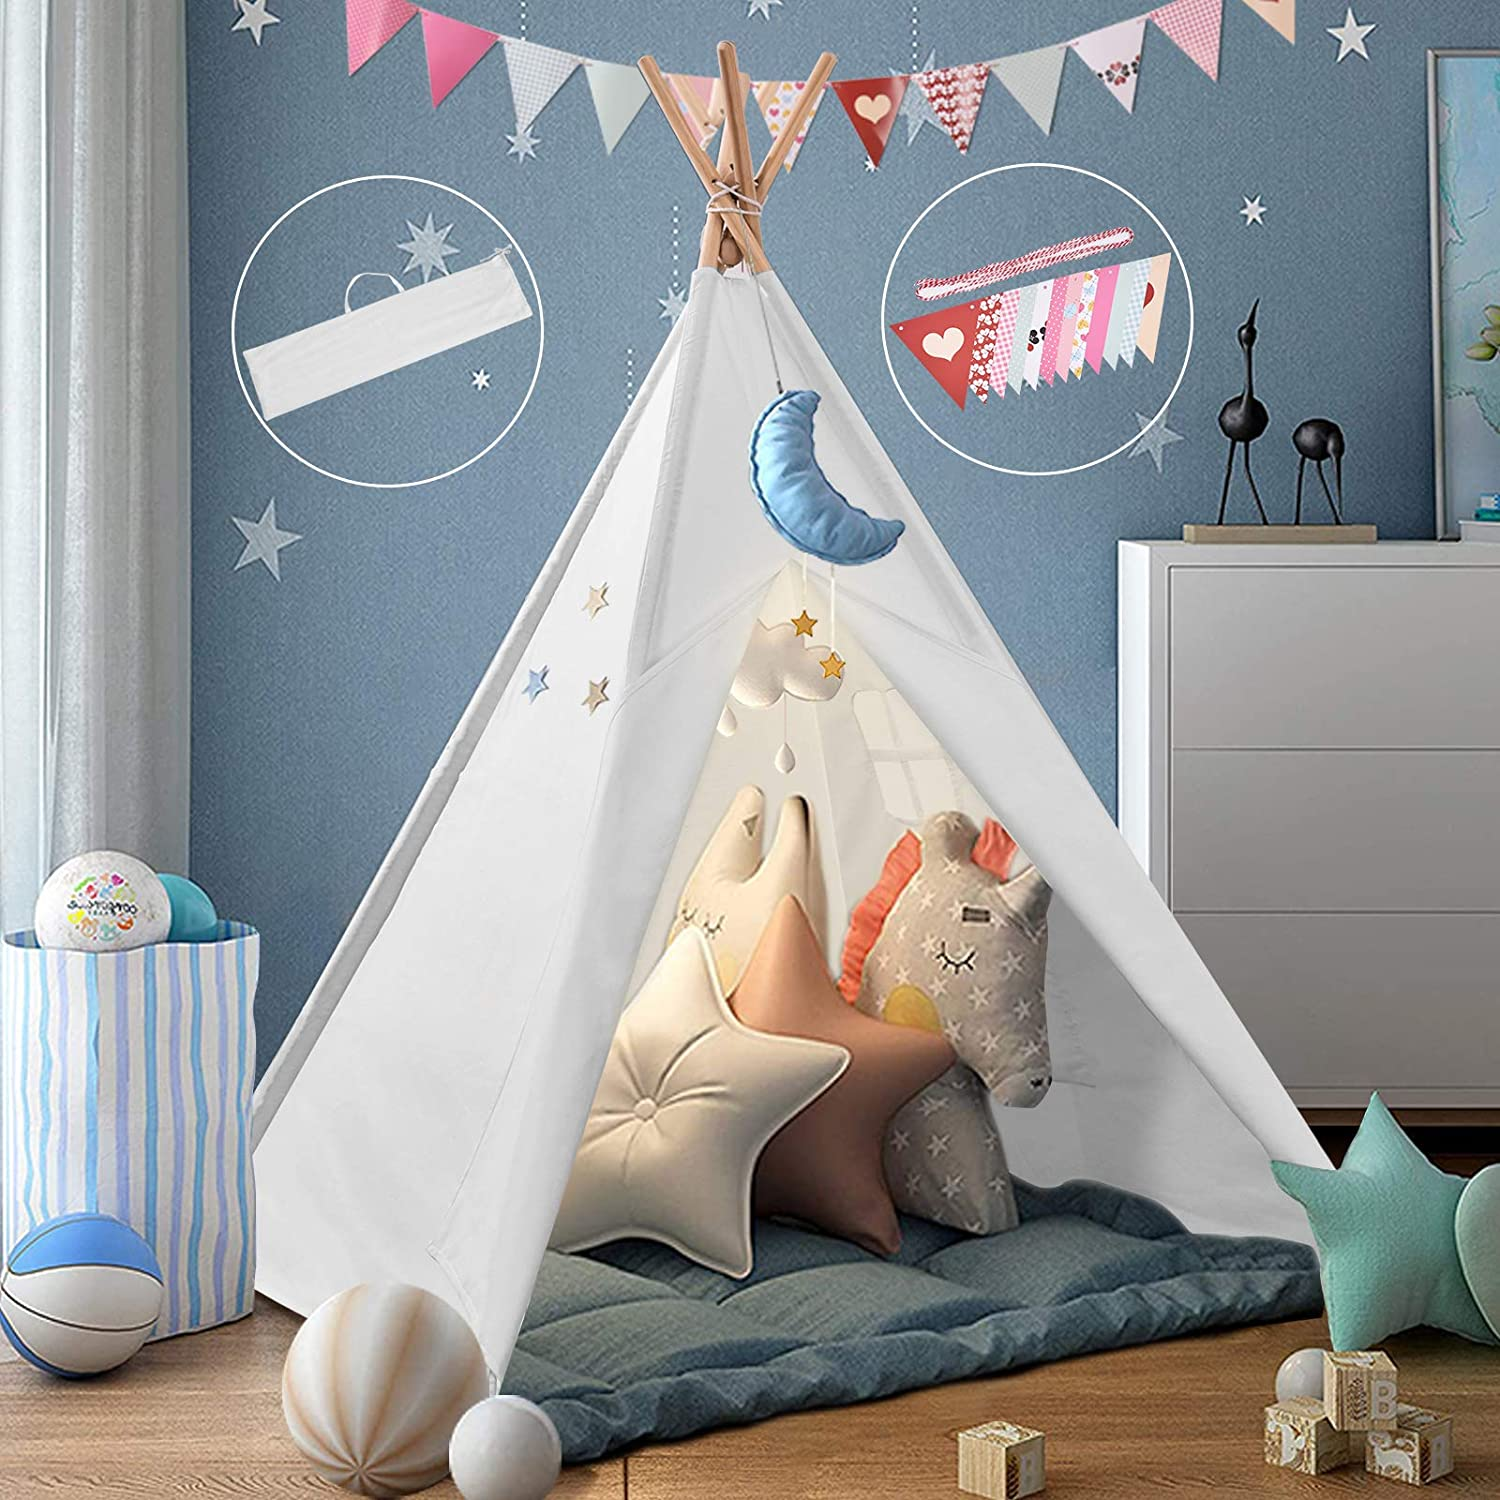 Houssem Teepee Large Phoenix Mall Cotton Cloth f Los Angeles Mall Play Foldable Kids-Tent Tent